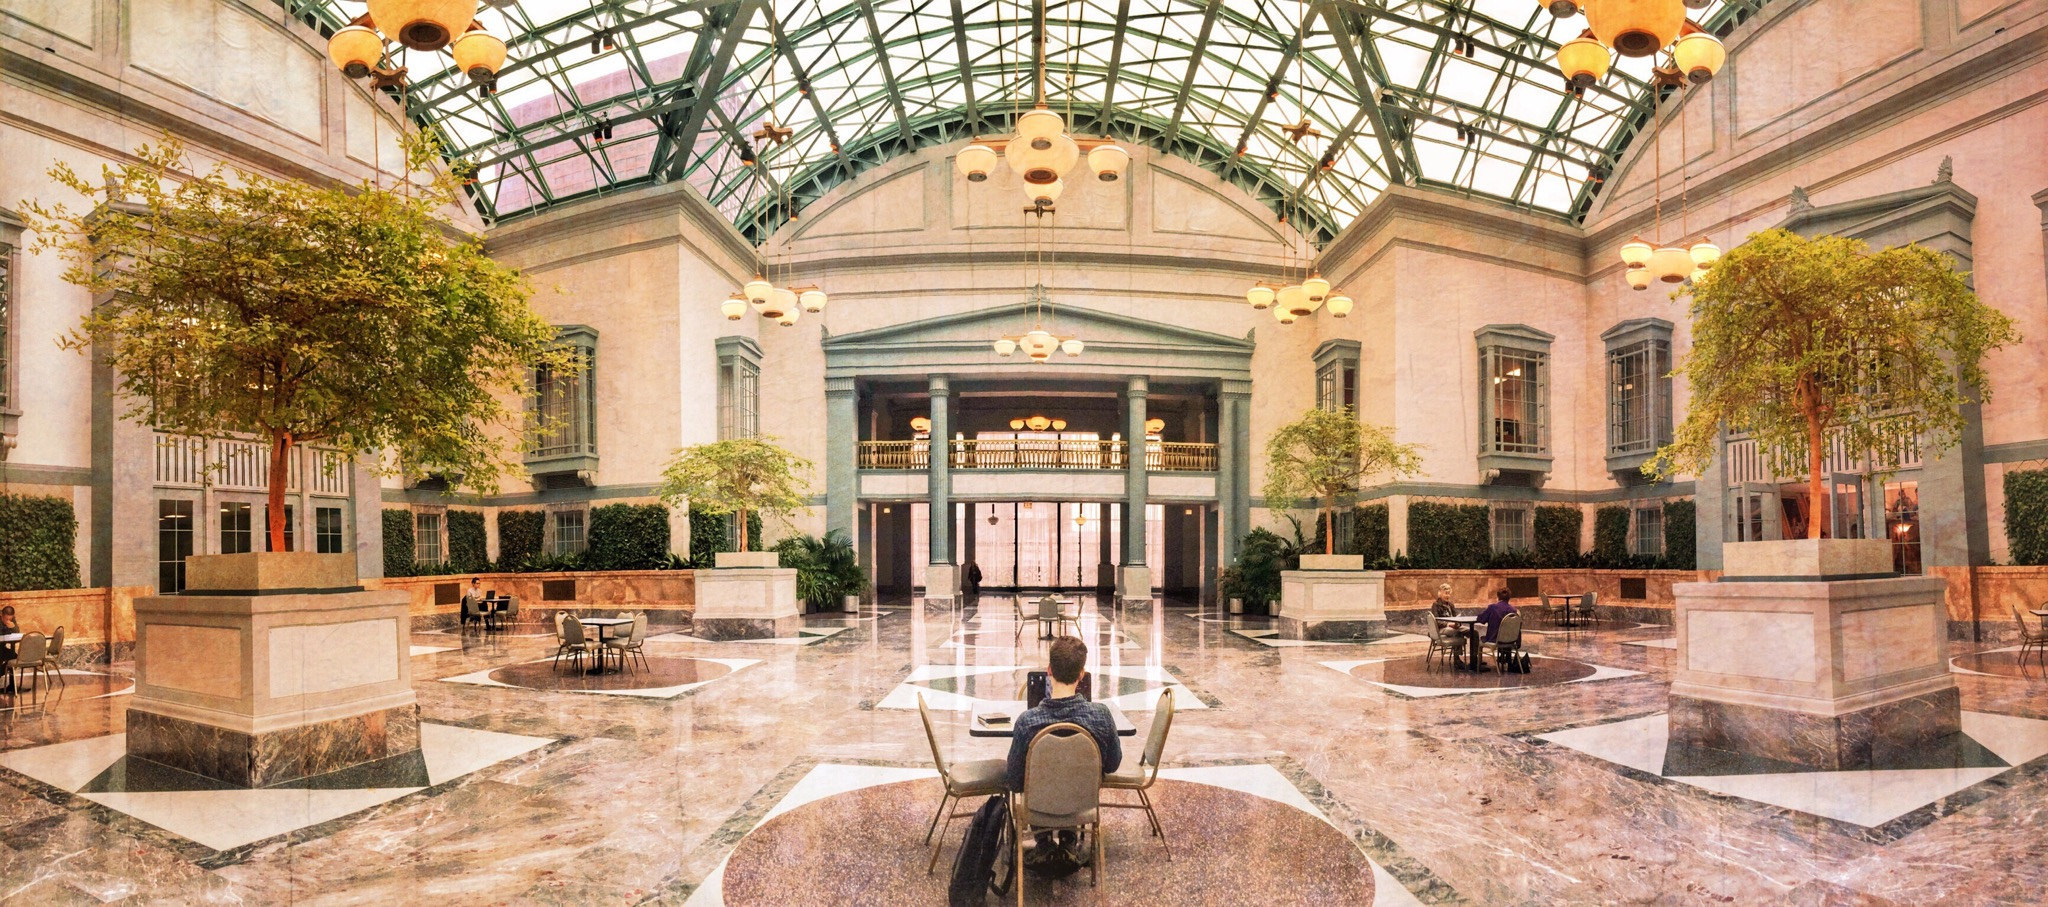 Harold Washington Library Winter Garden Interior Design